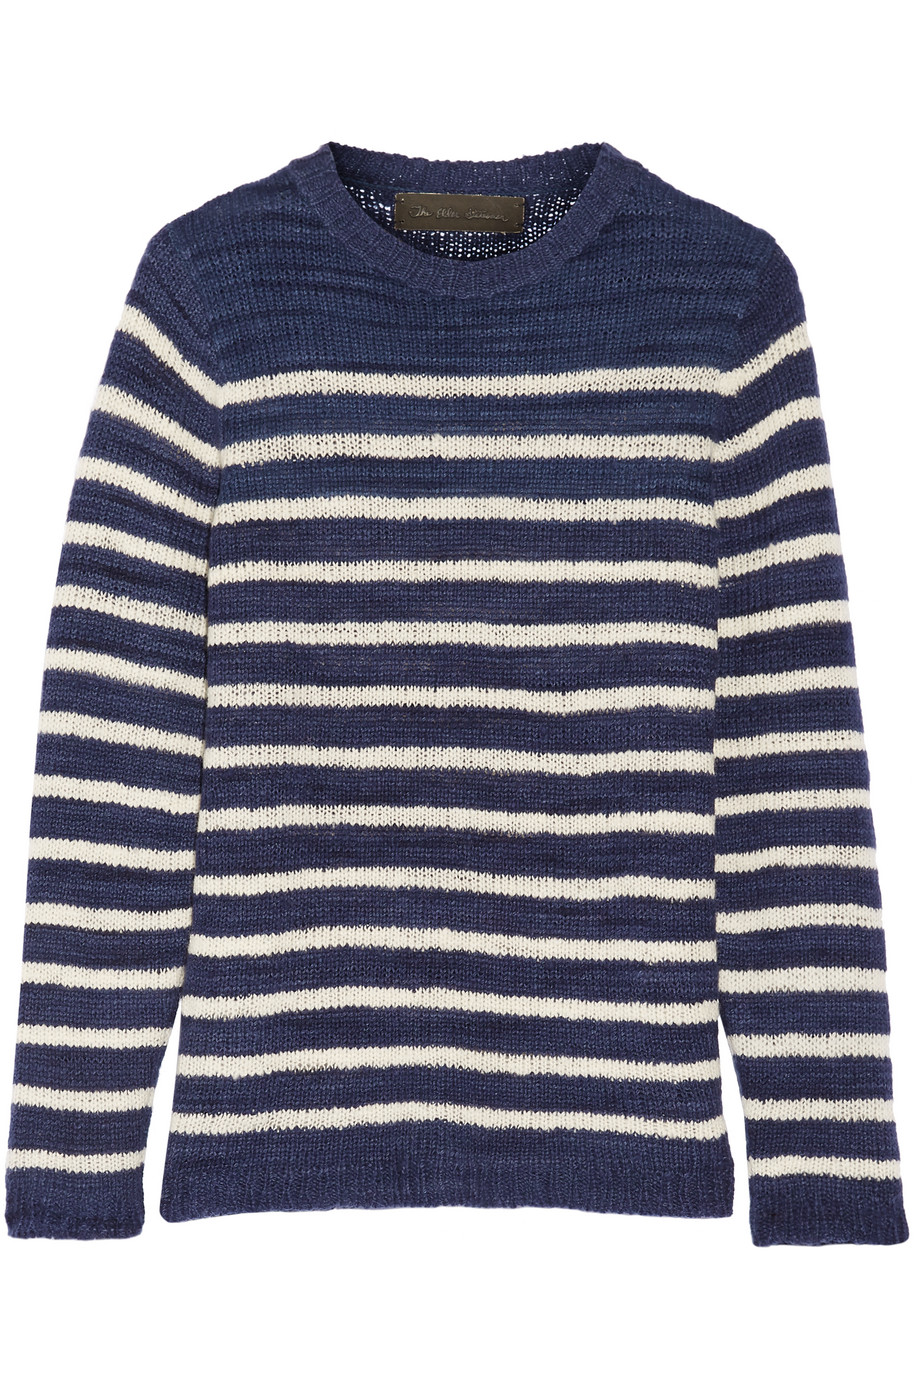 Picasso Striped Cashmere Sweater, The Elder Statesman, Navy, Women's, Size: M